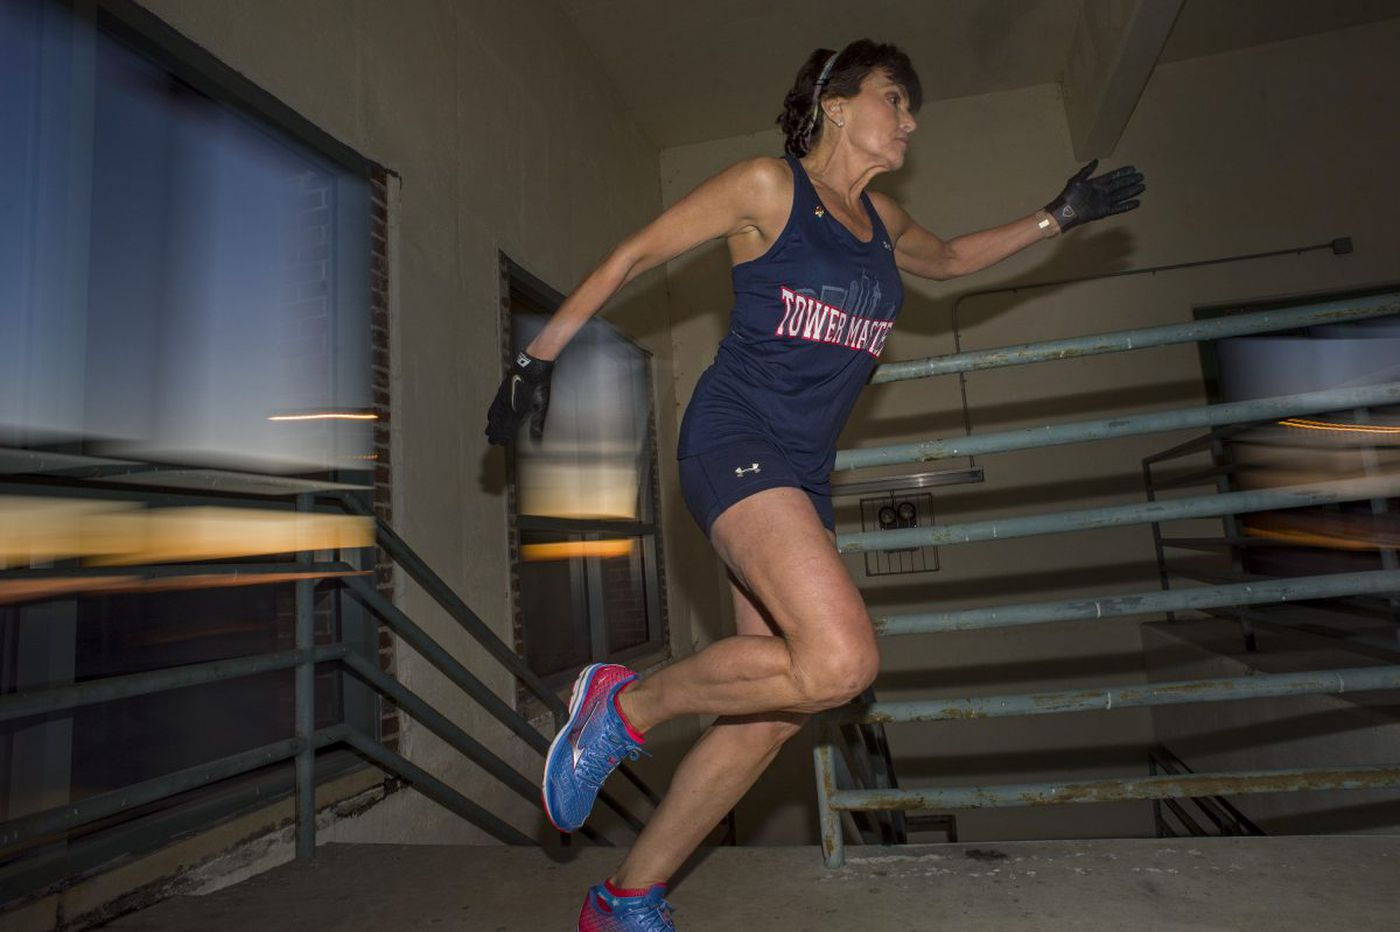 Jersey Shore cancer survivor races up stairs to inspire others, taking her to the top of the Eiffel Tower